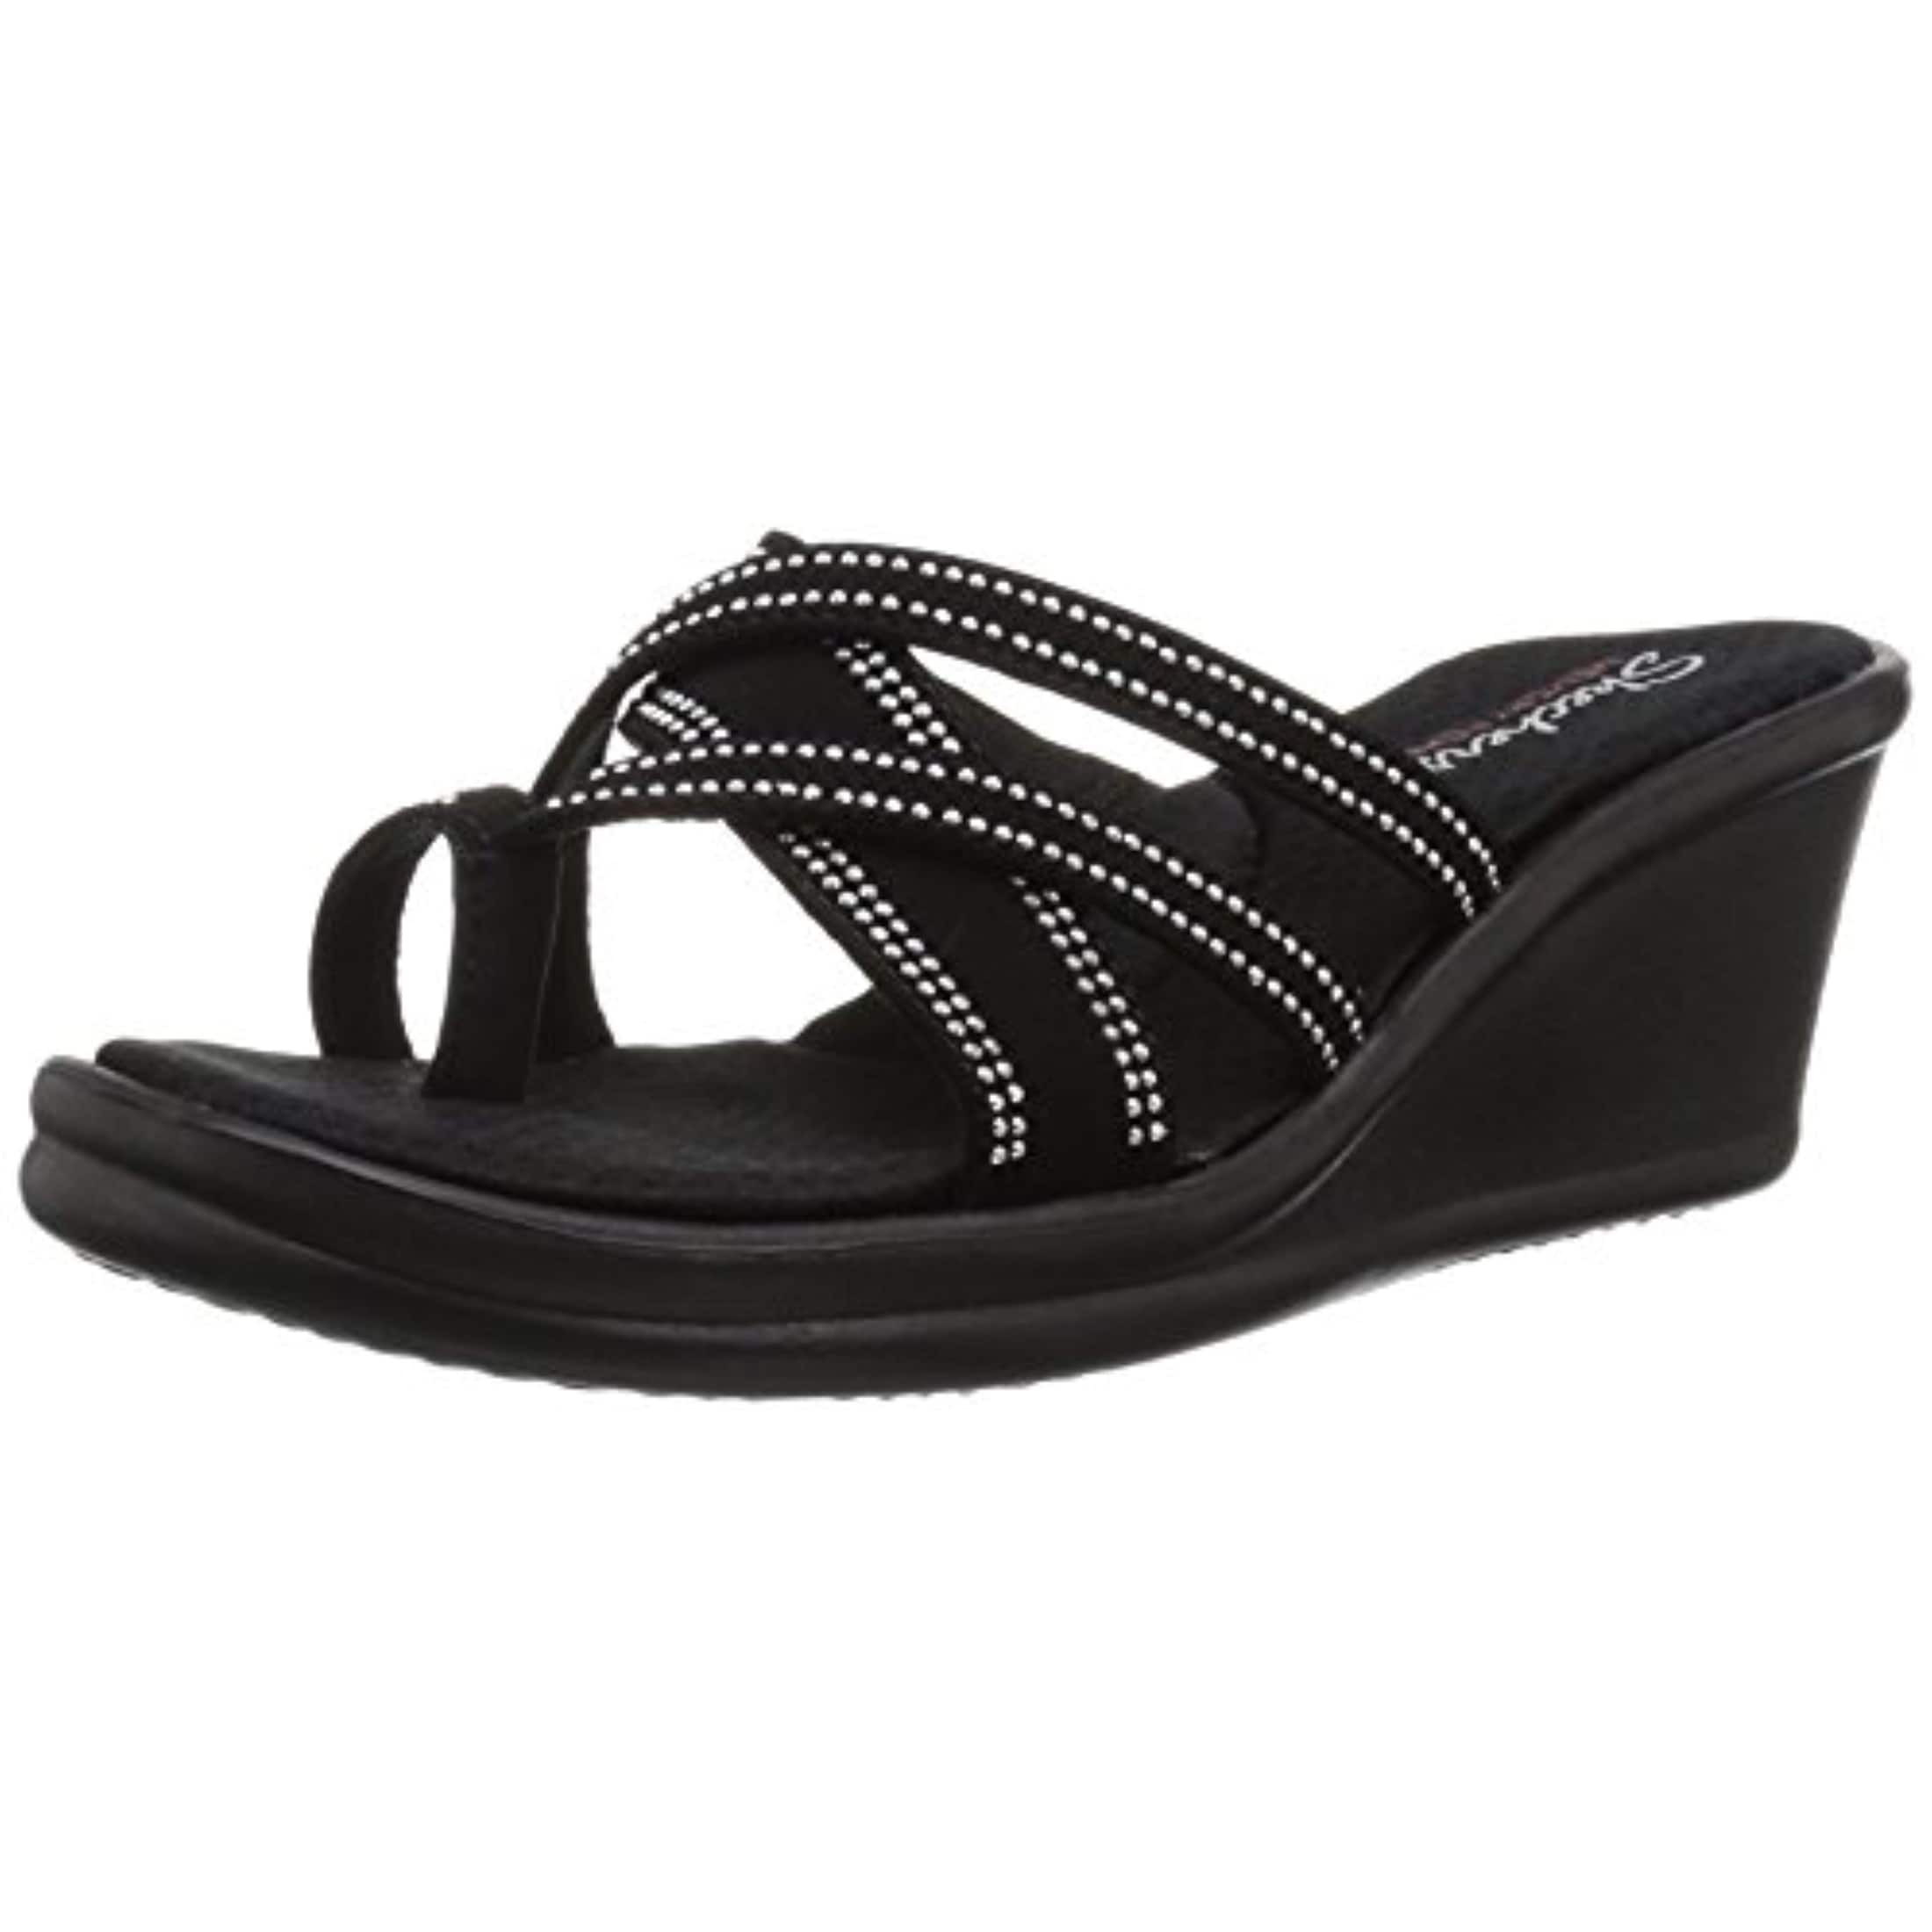 skechers memory foam womens sandals